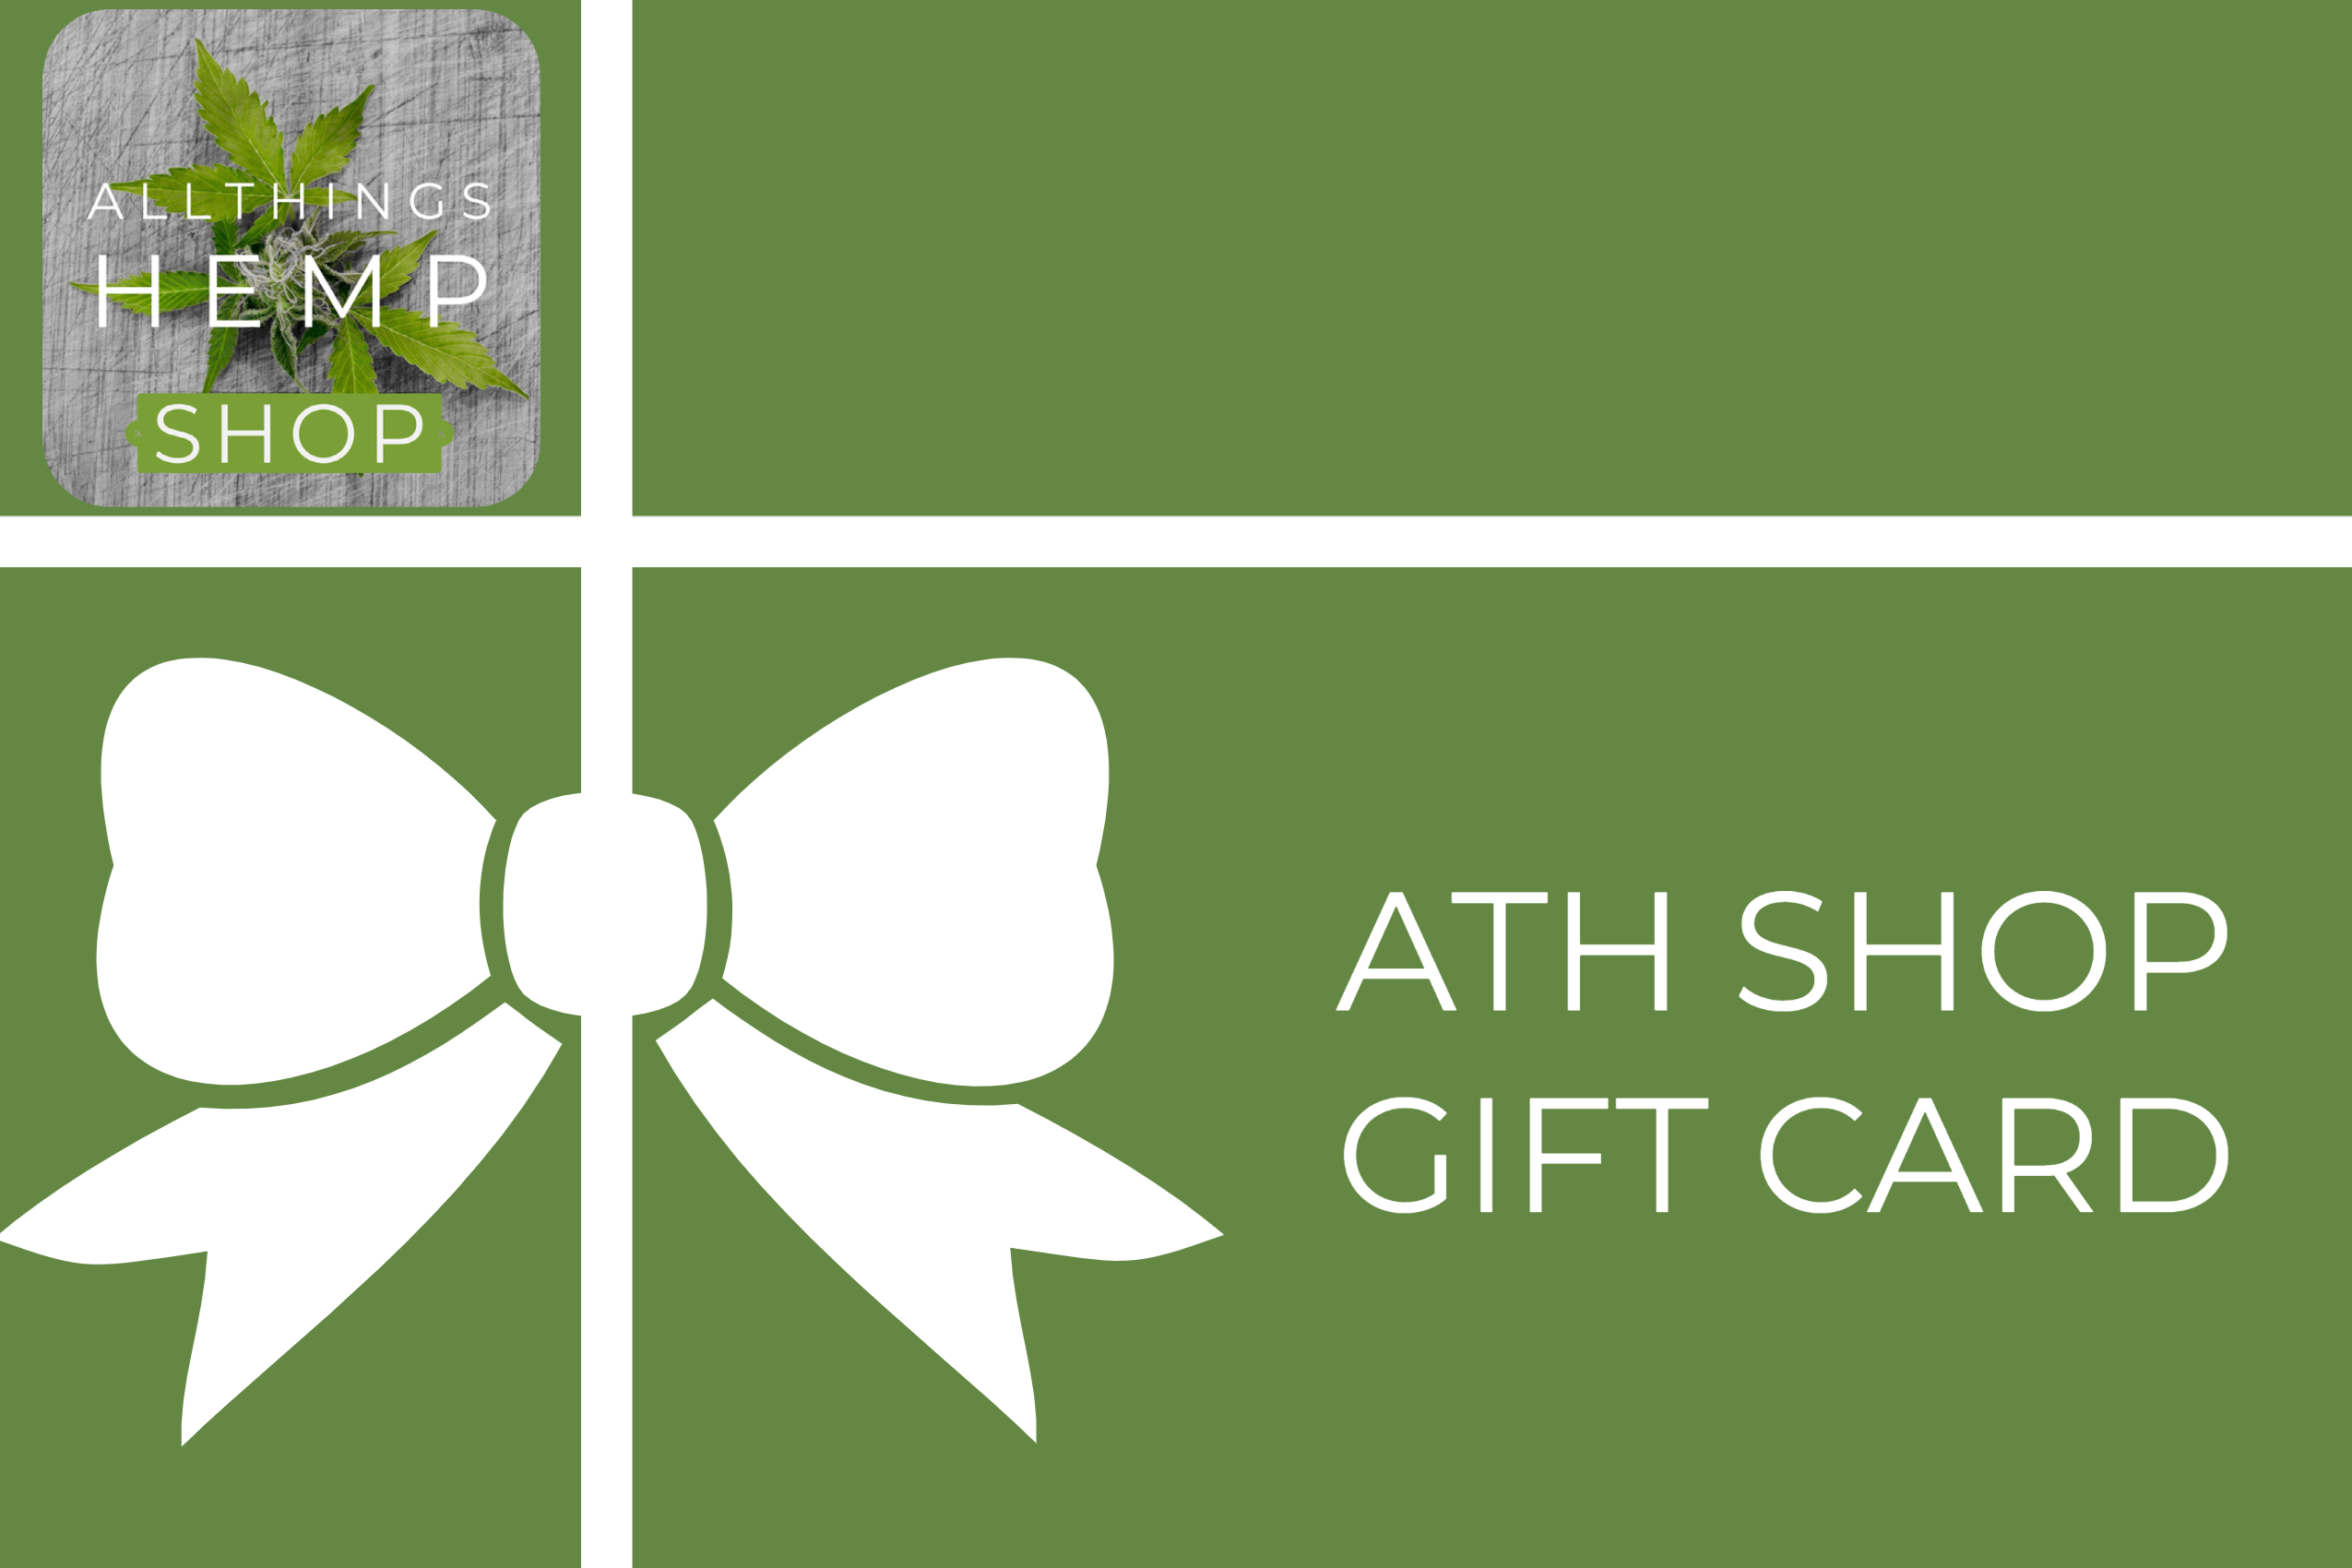 The ATH Shop Gift Card